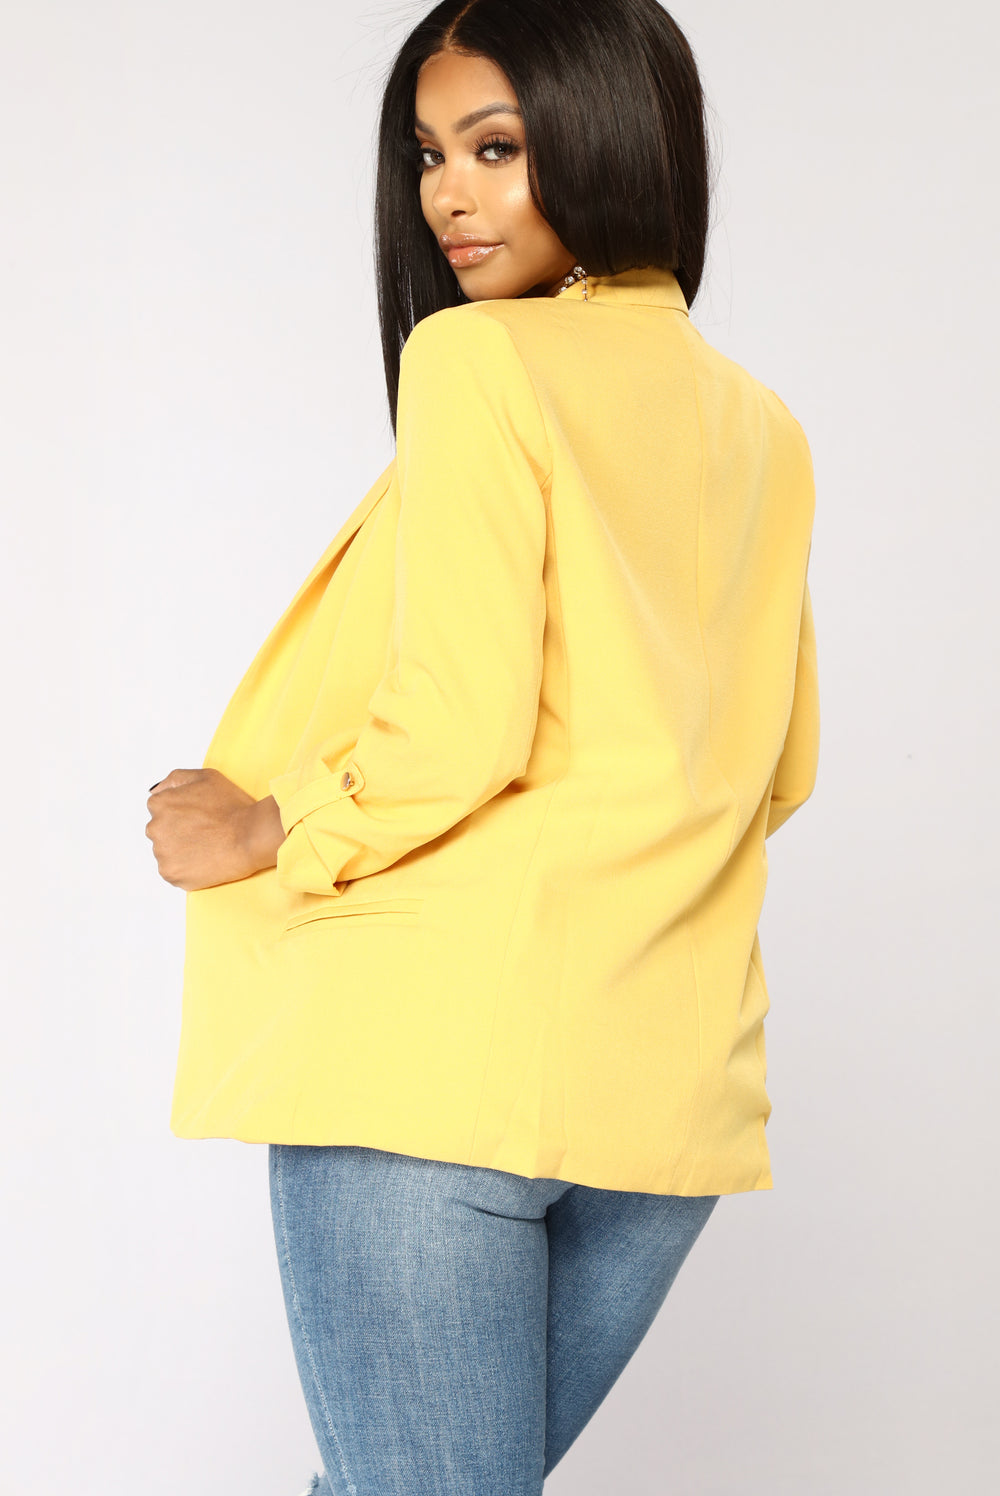 Business AF Blazer - Yellow